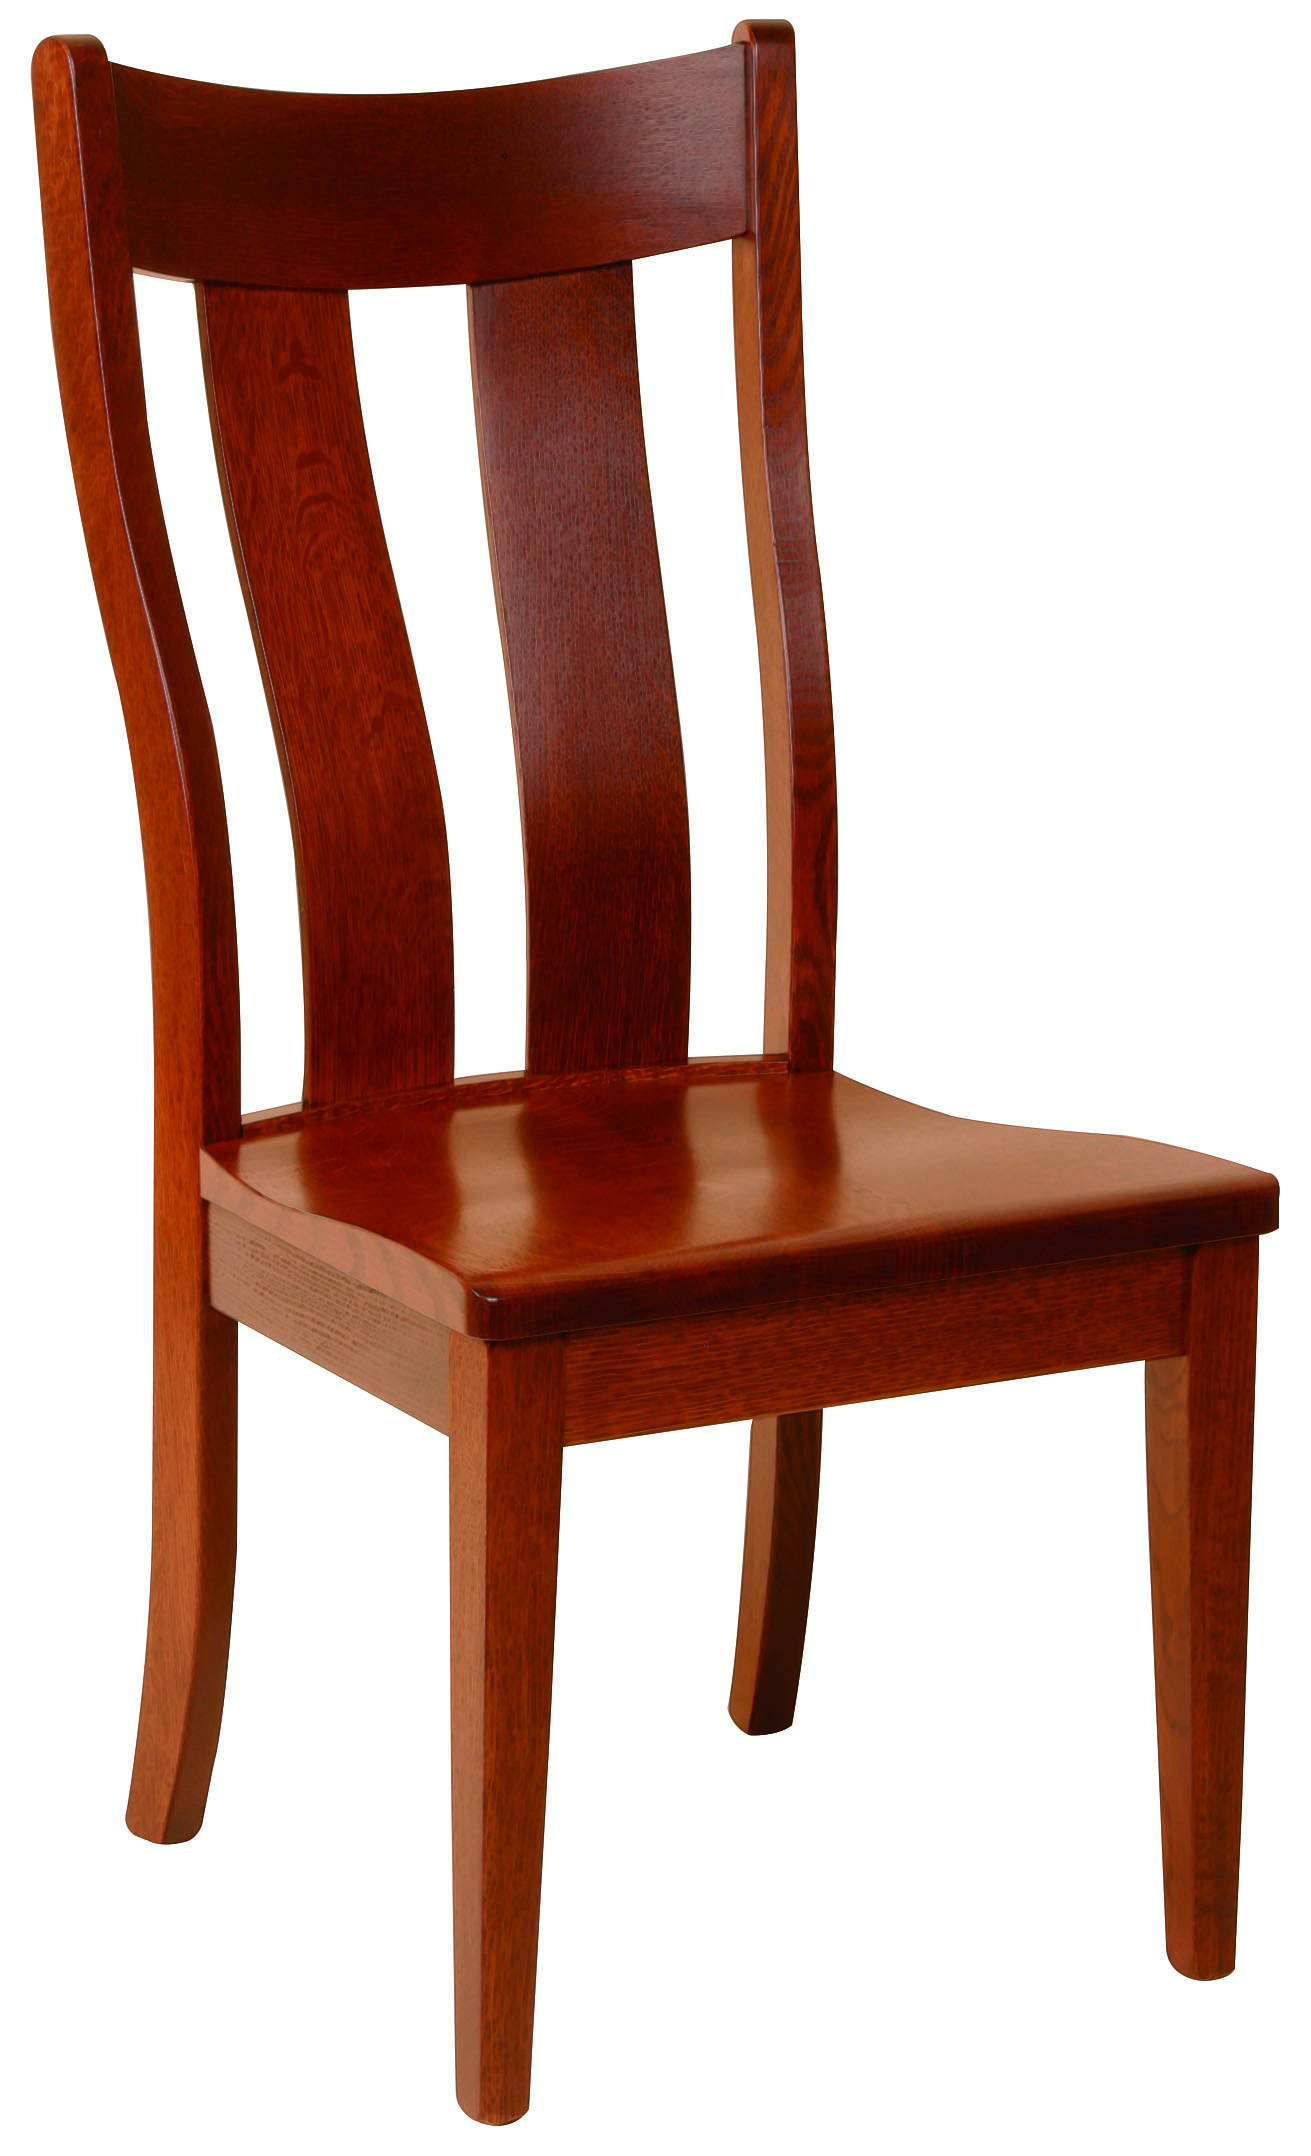 Richfield Solid Wood, Handcrafted Kitchen Chair or DIning Chair from Harvest Home Interiors Amish Furniture